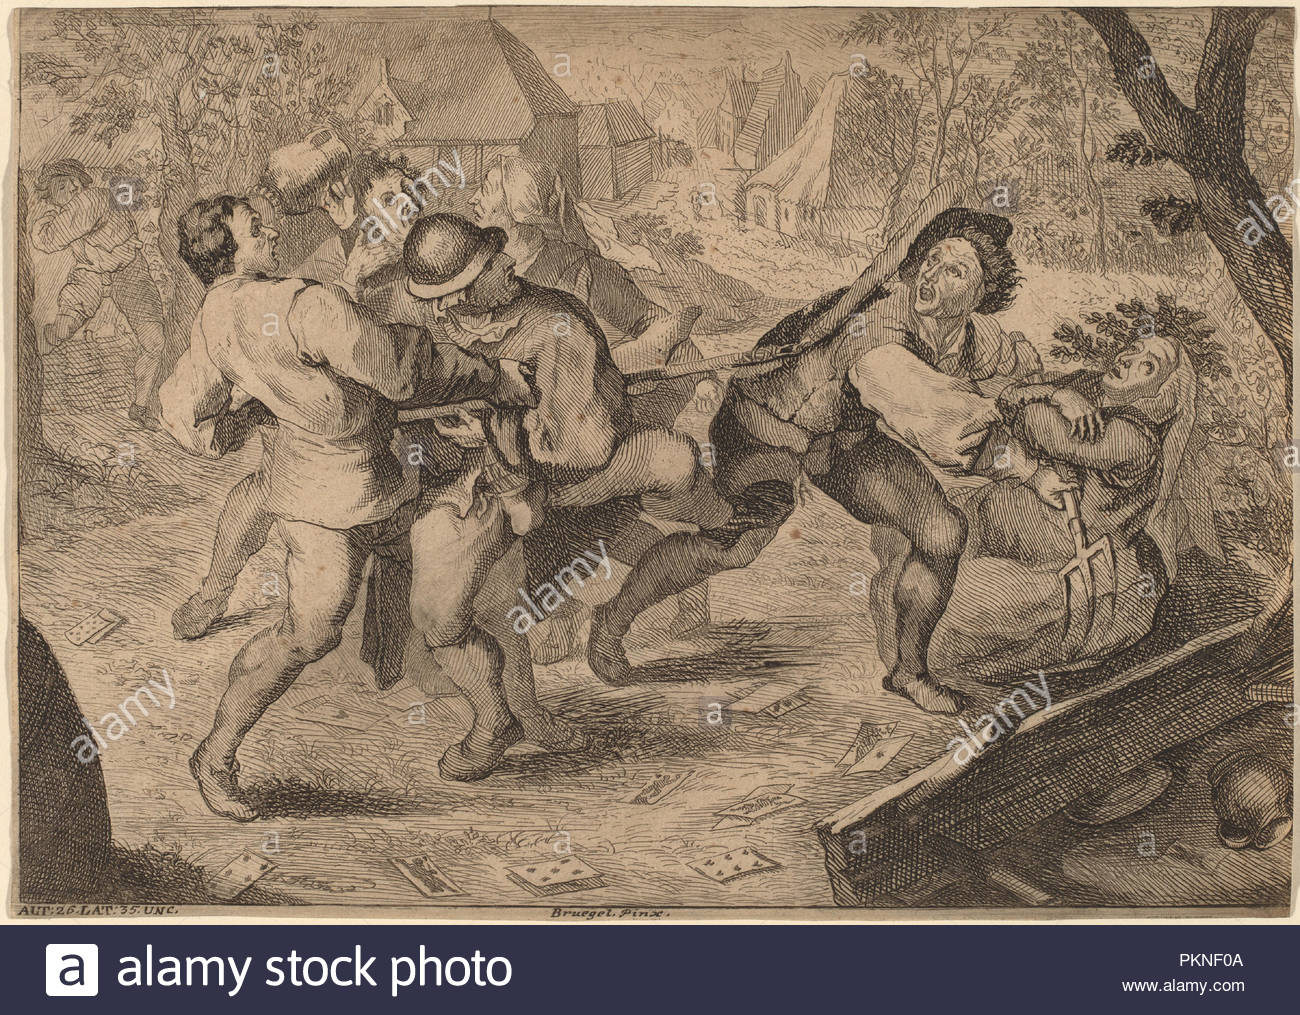 Dated: published 1728/1735. Medium: engraving. Museum: National Gallery of  Art, Washington DC. Author: Anton Joseph Prenner after Pieter Bruegel the  Elder.